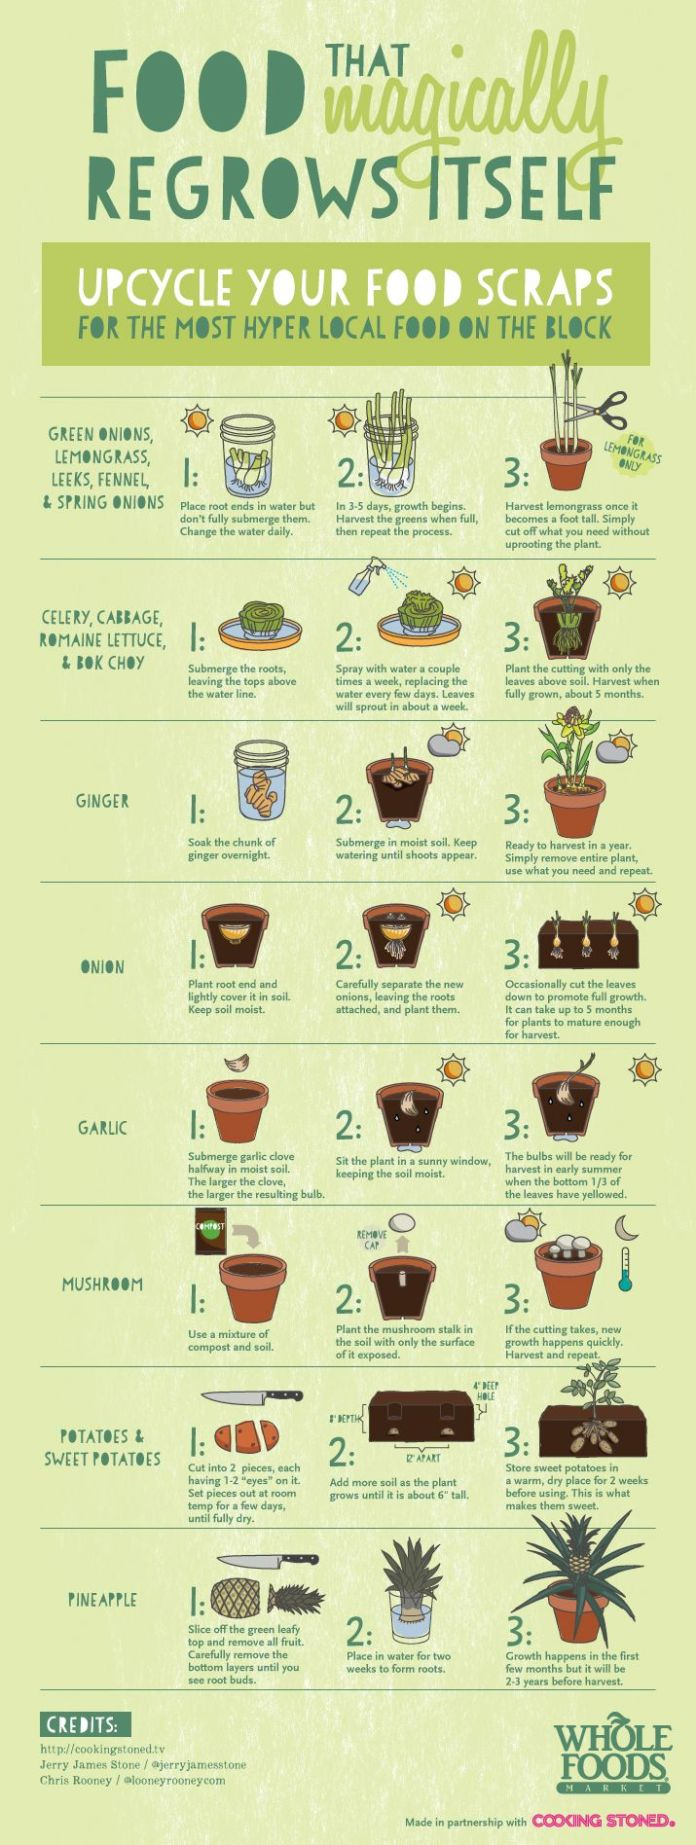 guide to upcycling food scraps